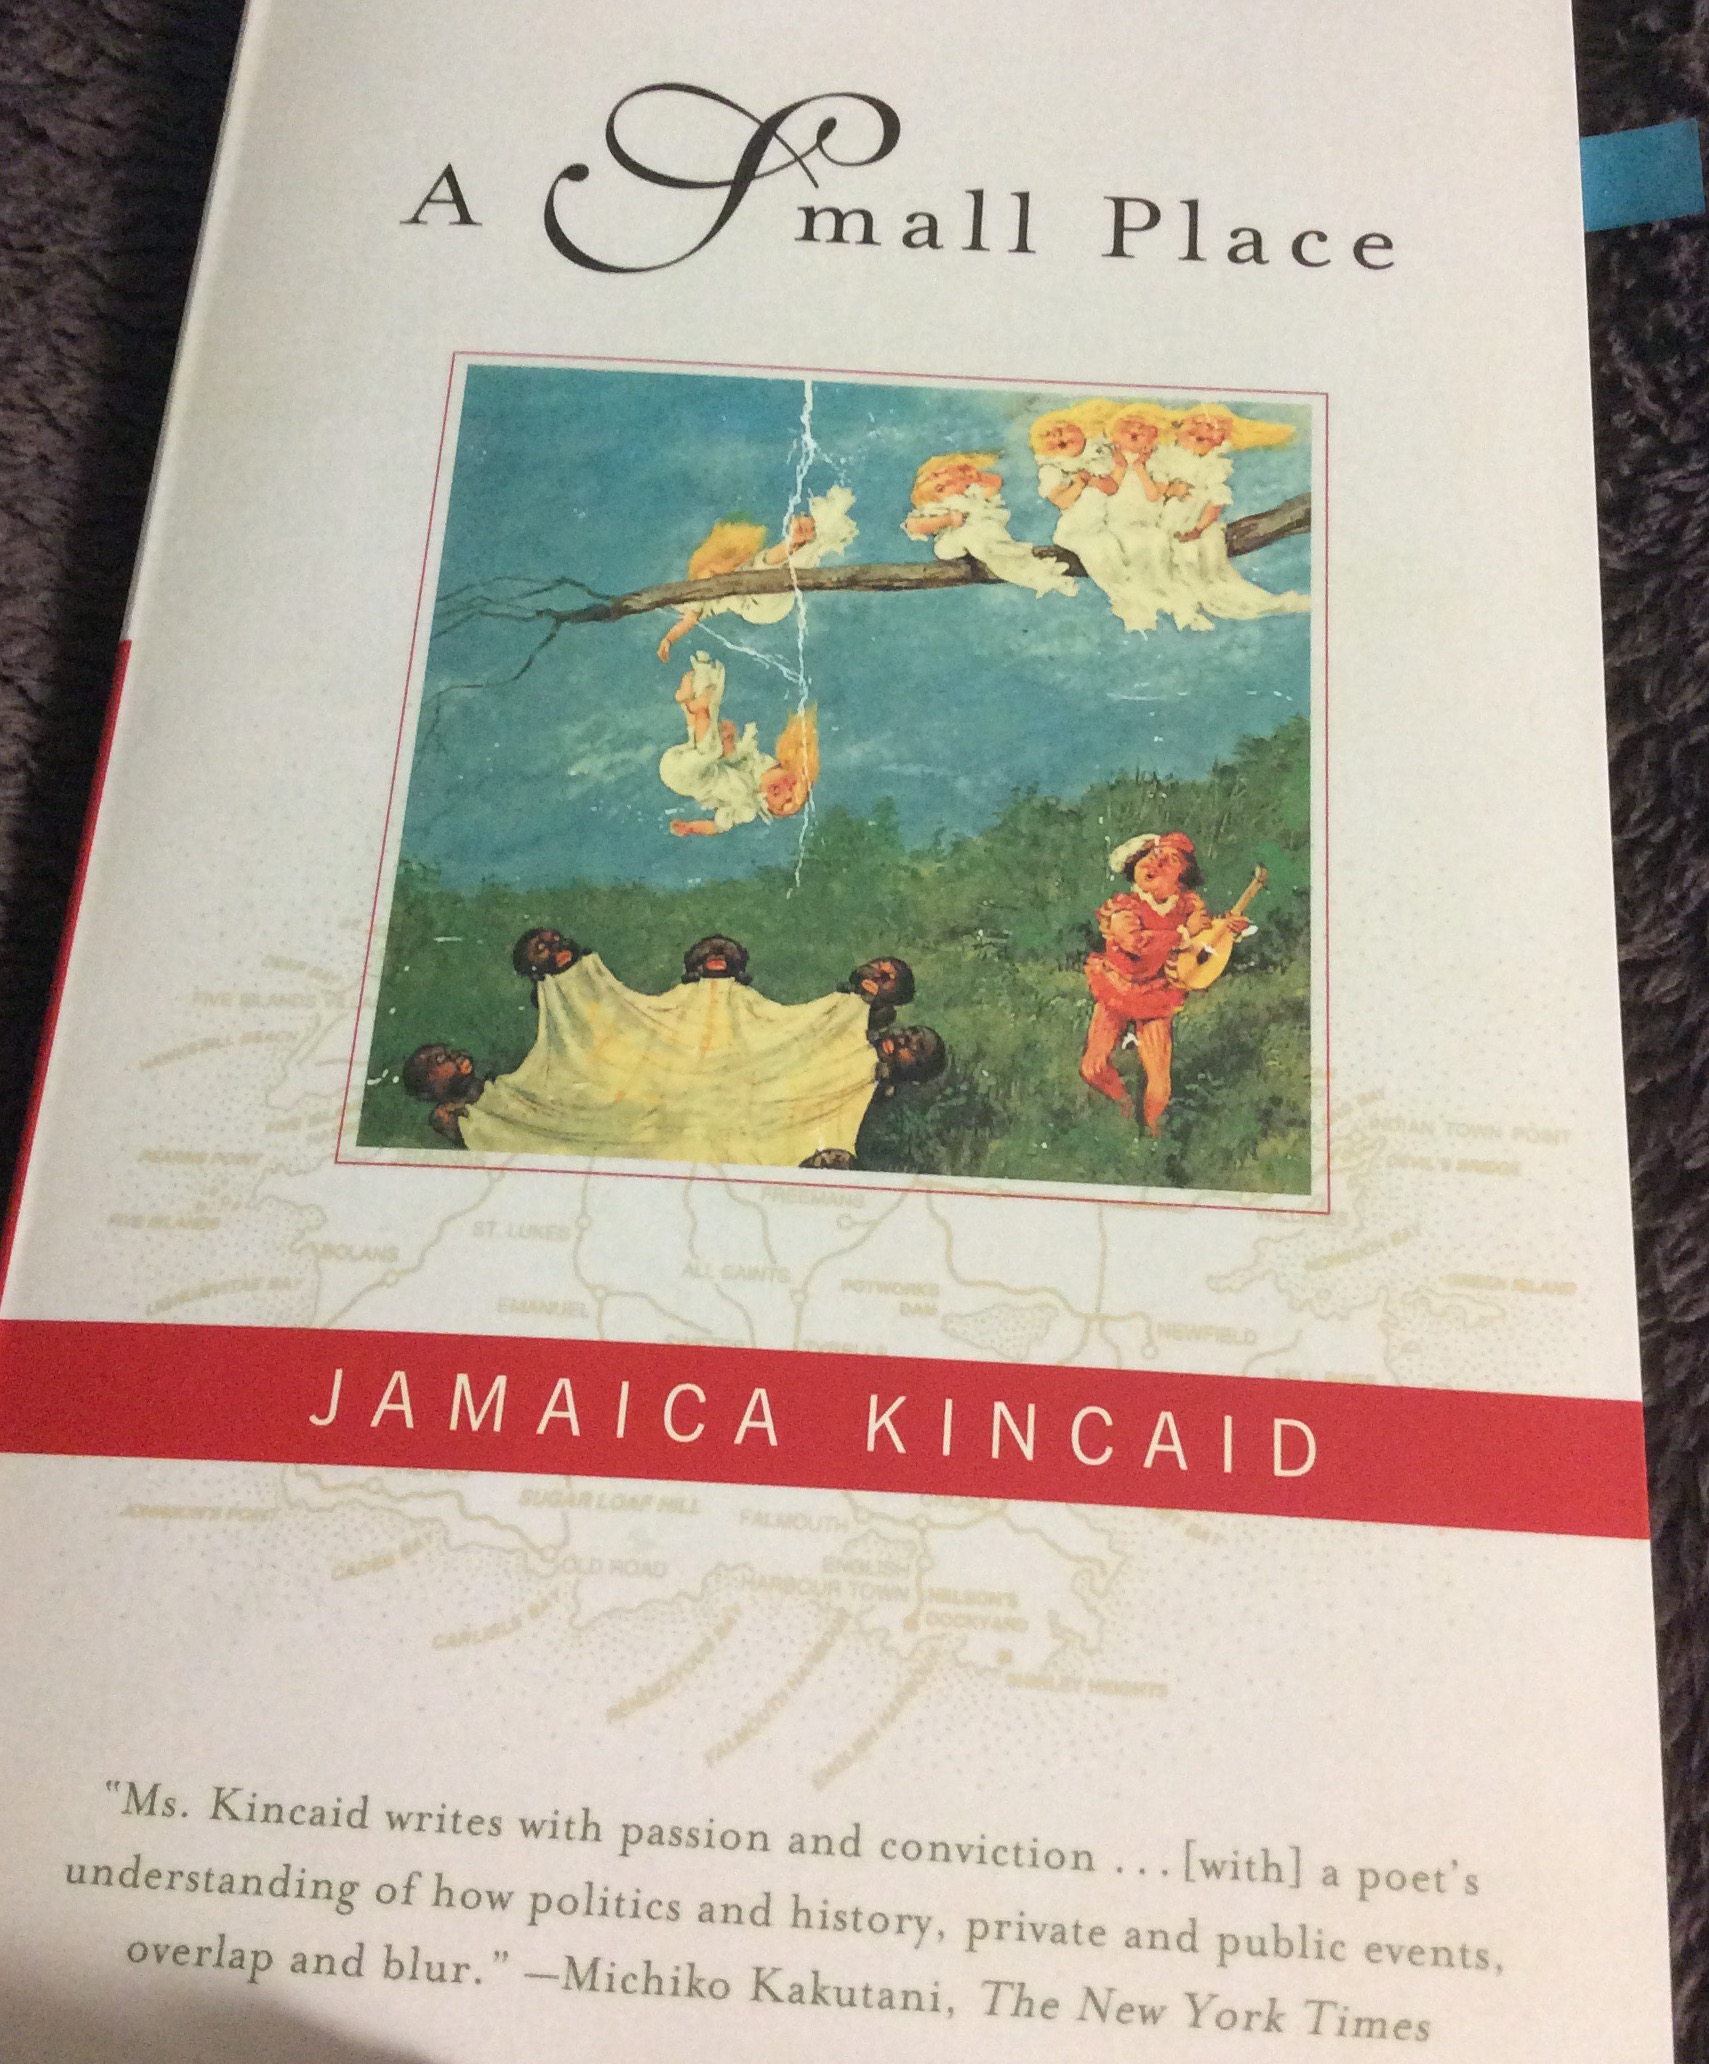 a small place jamaica kincaid questions